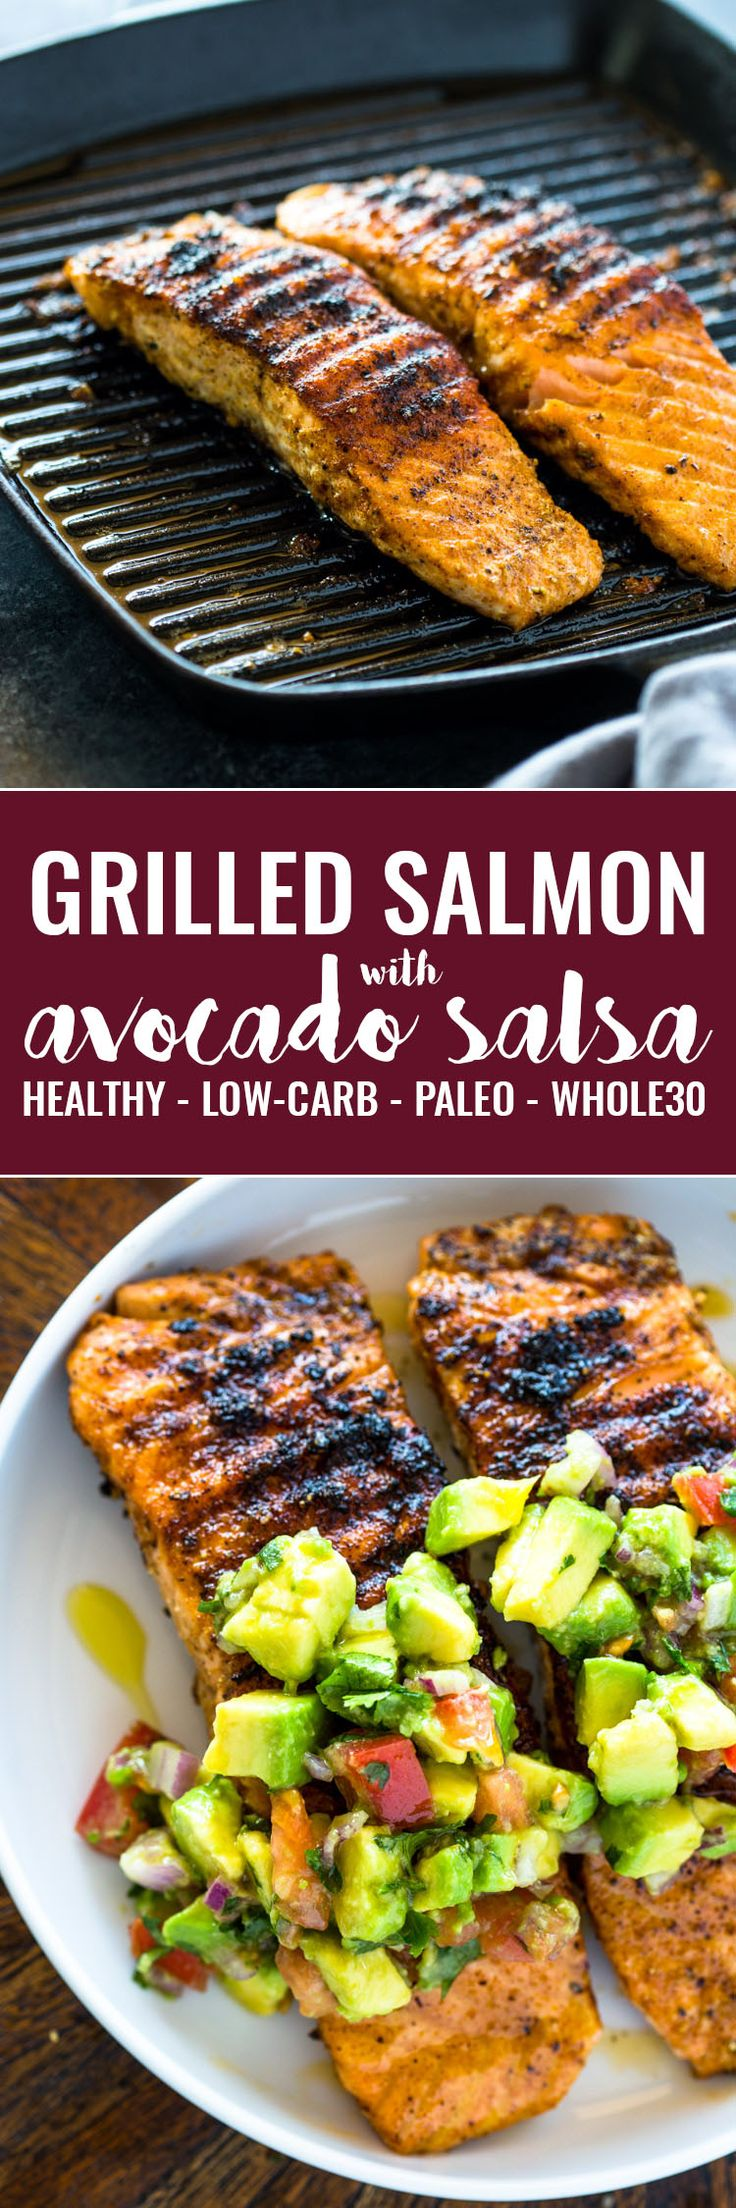 Tender salmon with cilantro, lime, avocado and tomato salsa. This healthy and flavorful meal is bursting with flavor, color, and texture and is ready in under 20 minutes. It can be grilled, pan seared or baked!